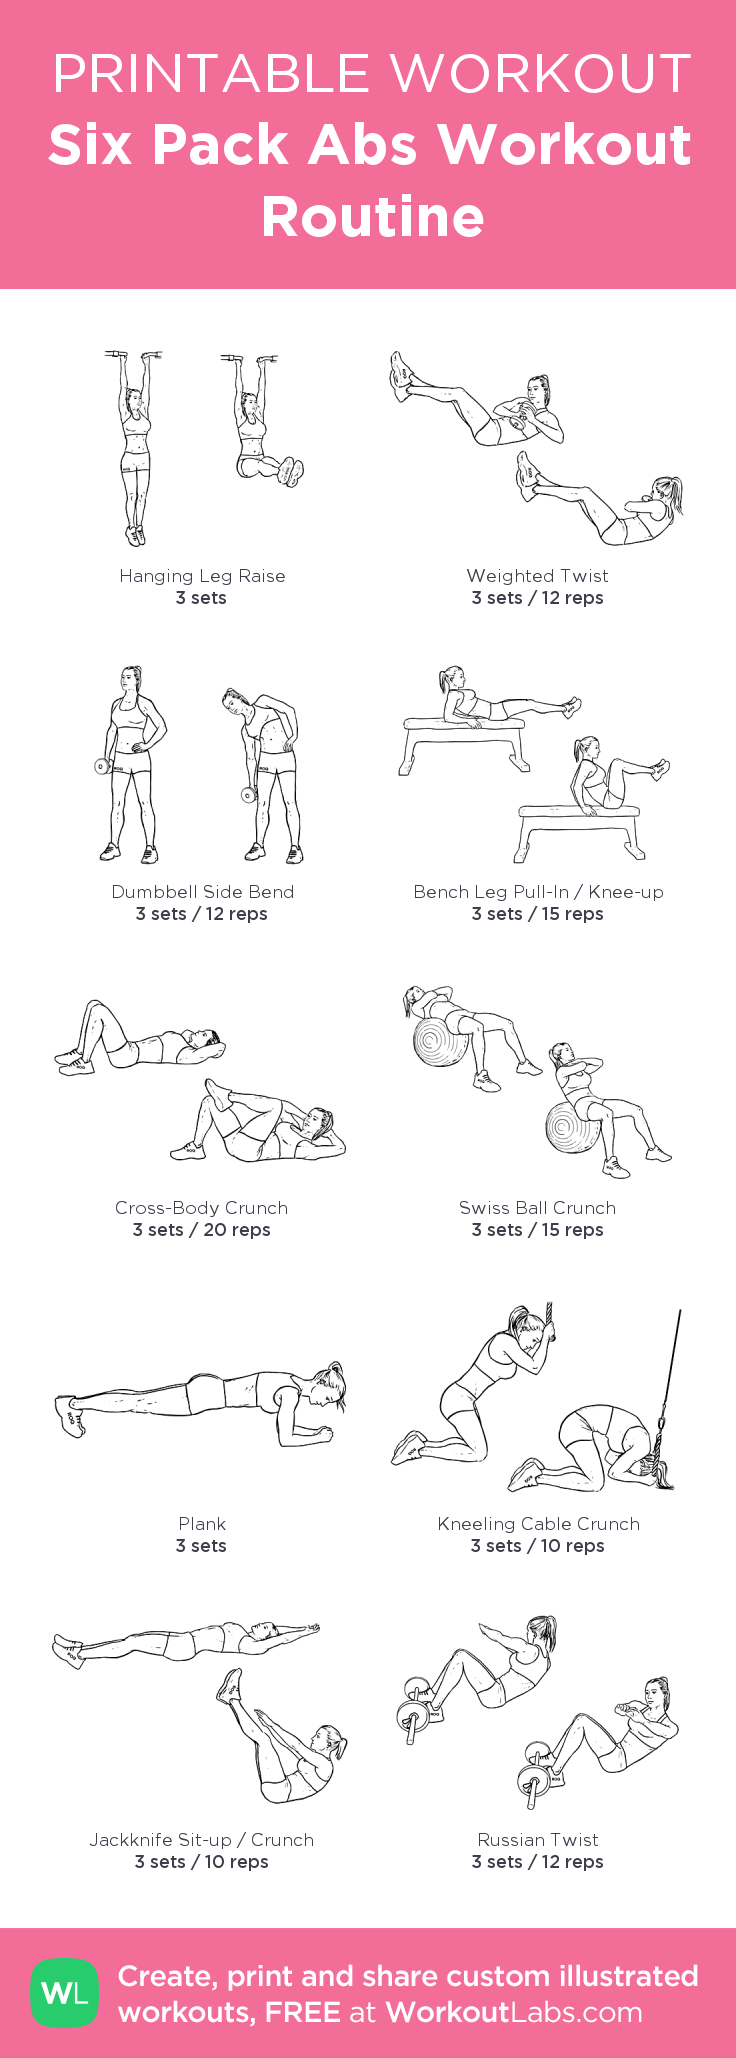 Six Pack Abs Workout Routine My Custom Printable Workout -2547